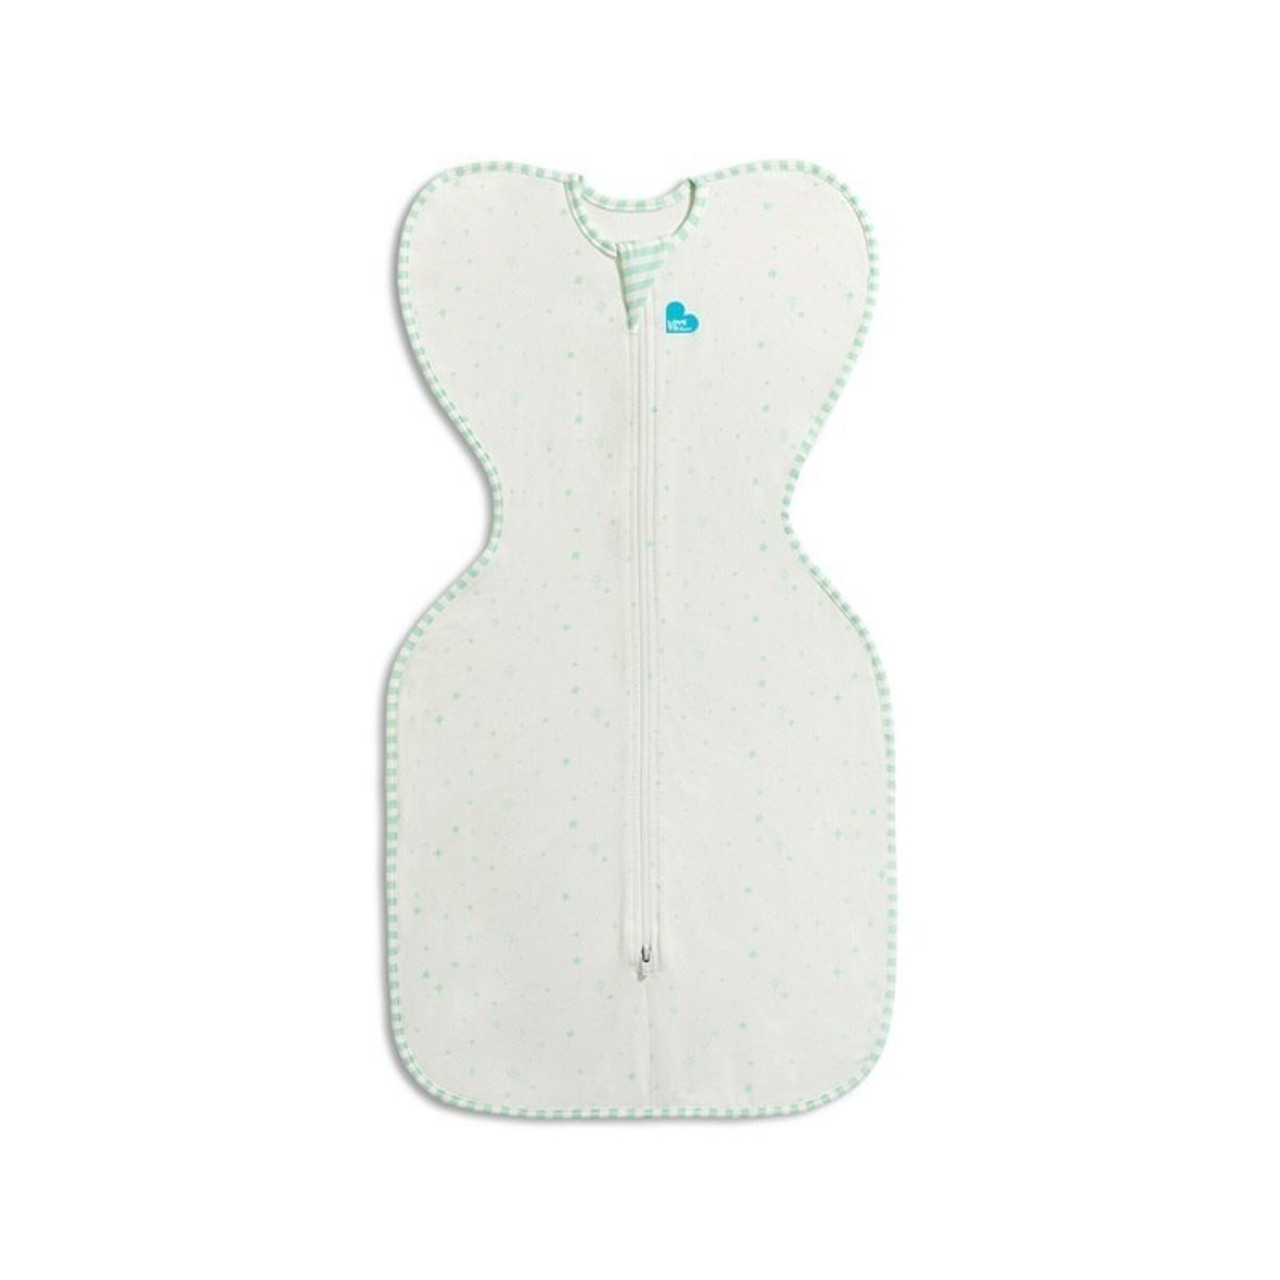 Swaddle Up Organic Medium by Love To Dream - MINT